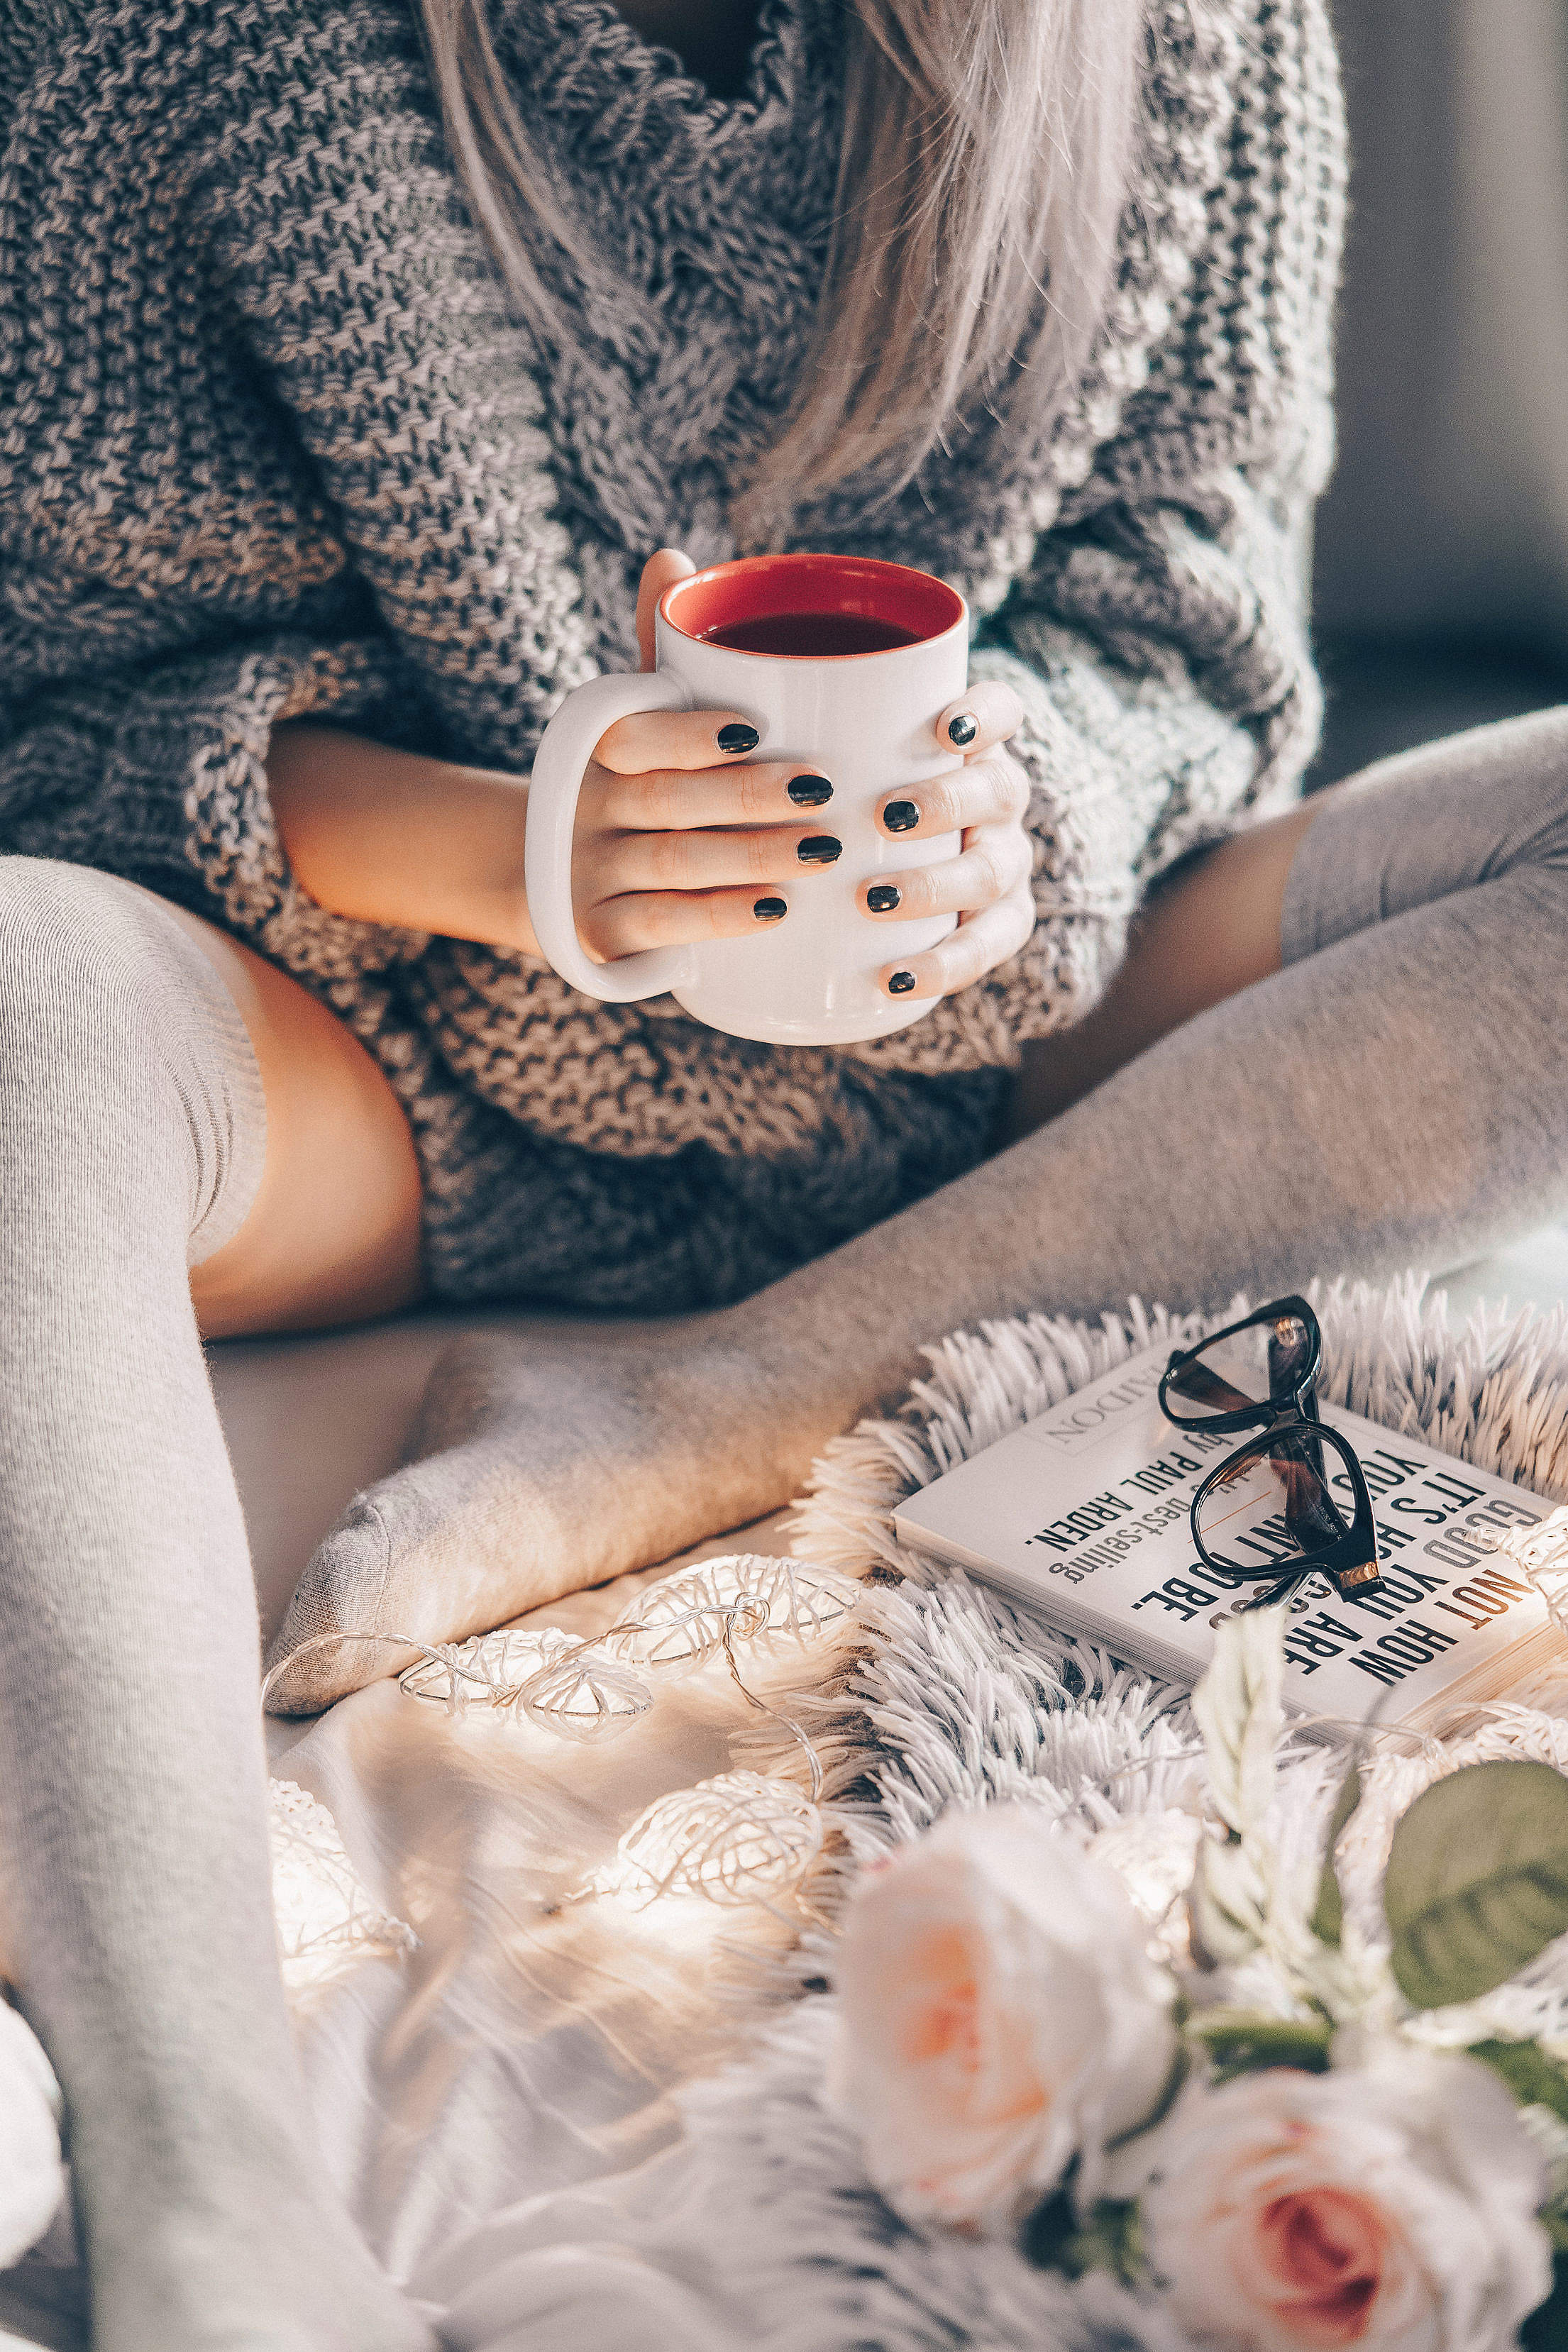 Woman Wearing Knitted Sweater Relaxing in Bed Free Stock Photo